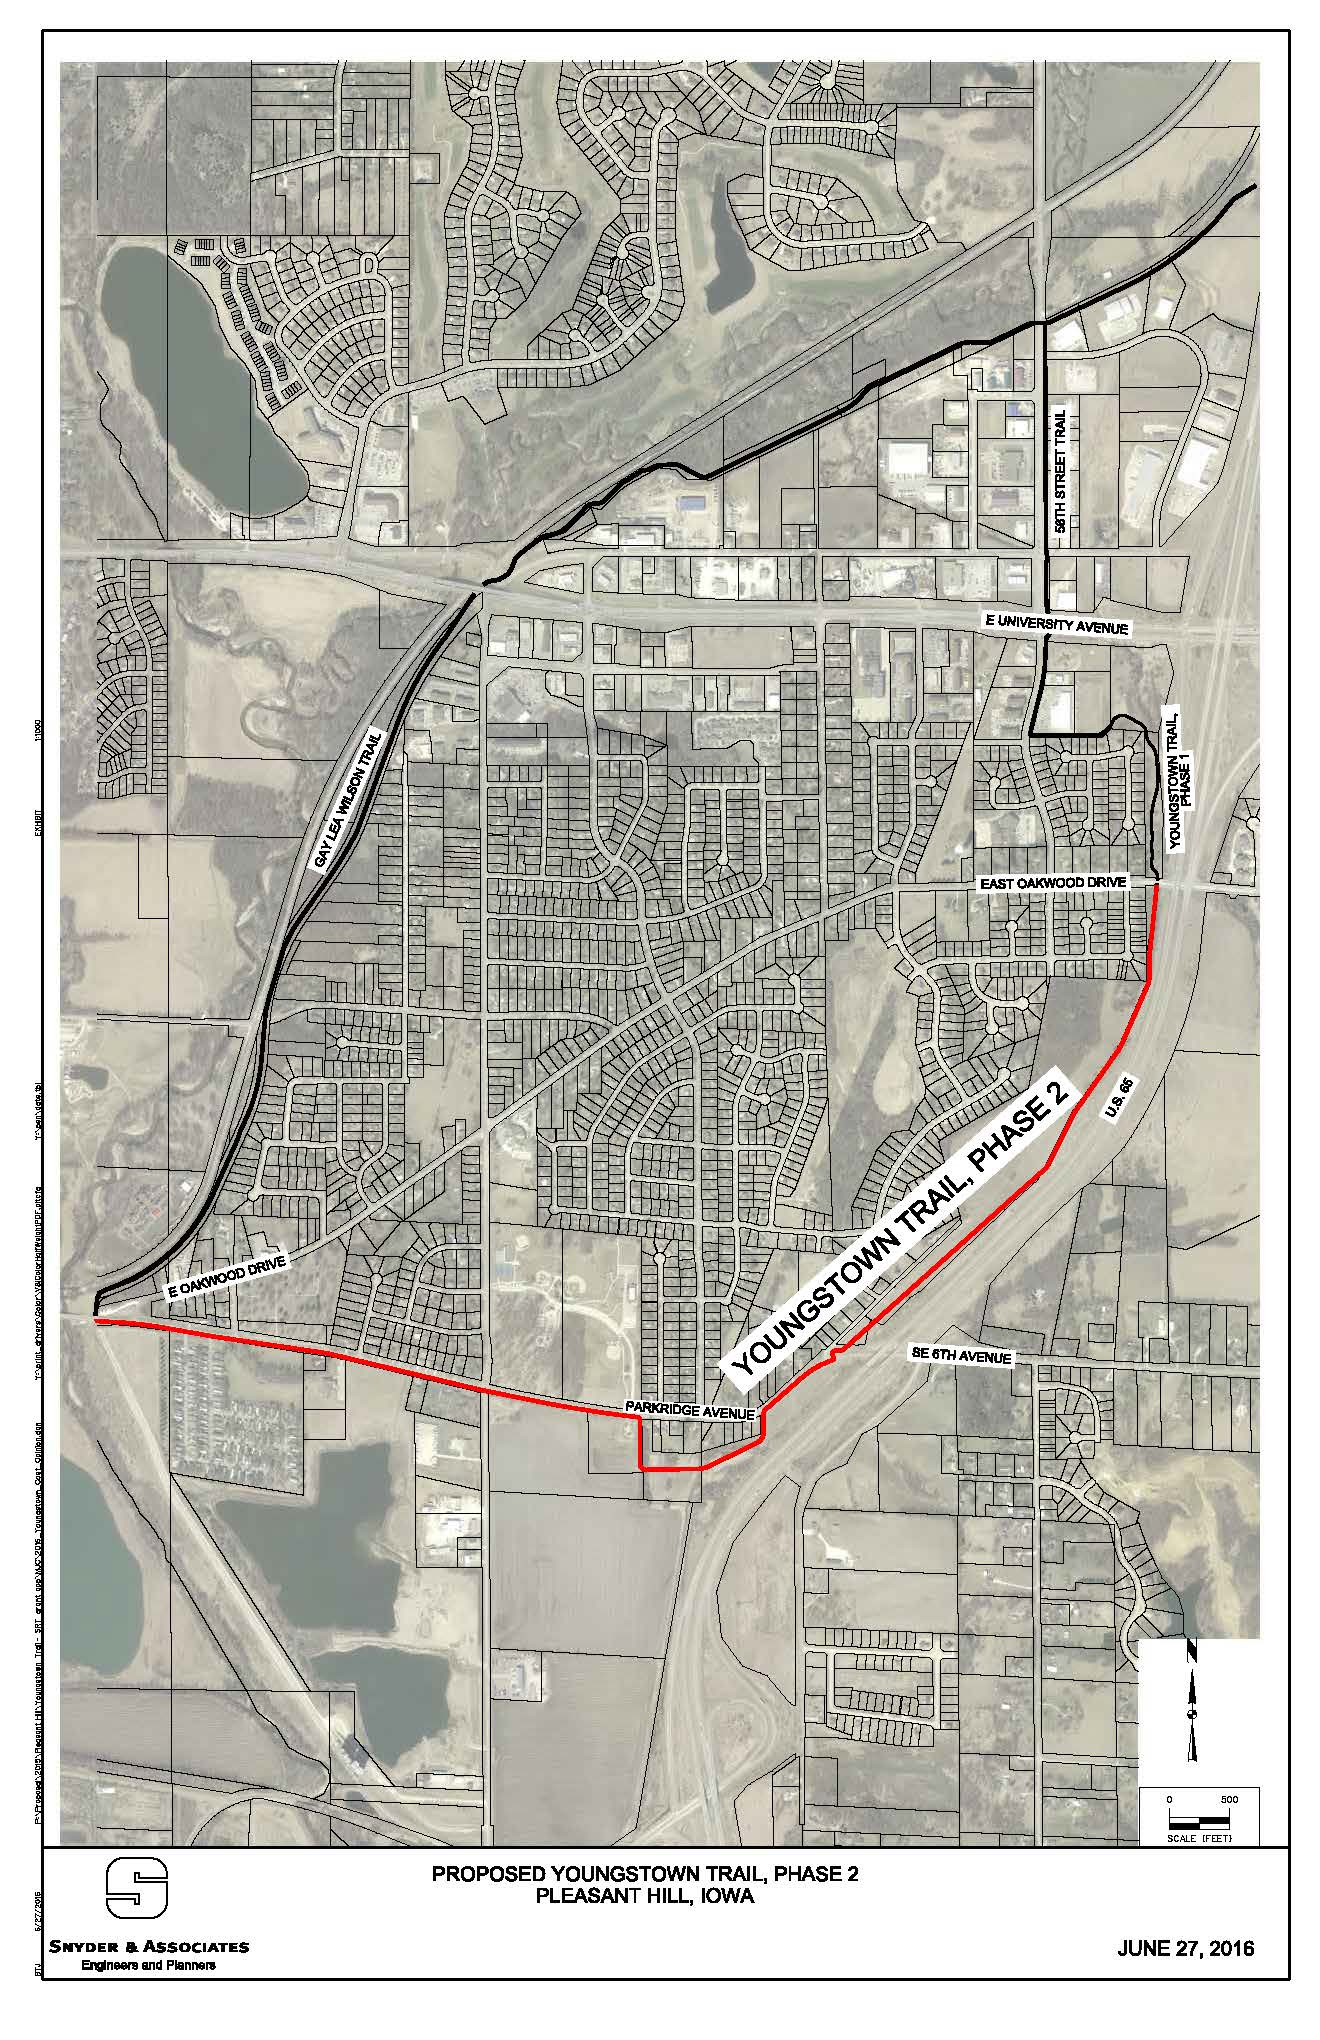 Youngstown Trail Phase 2